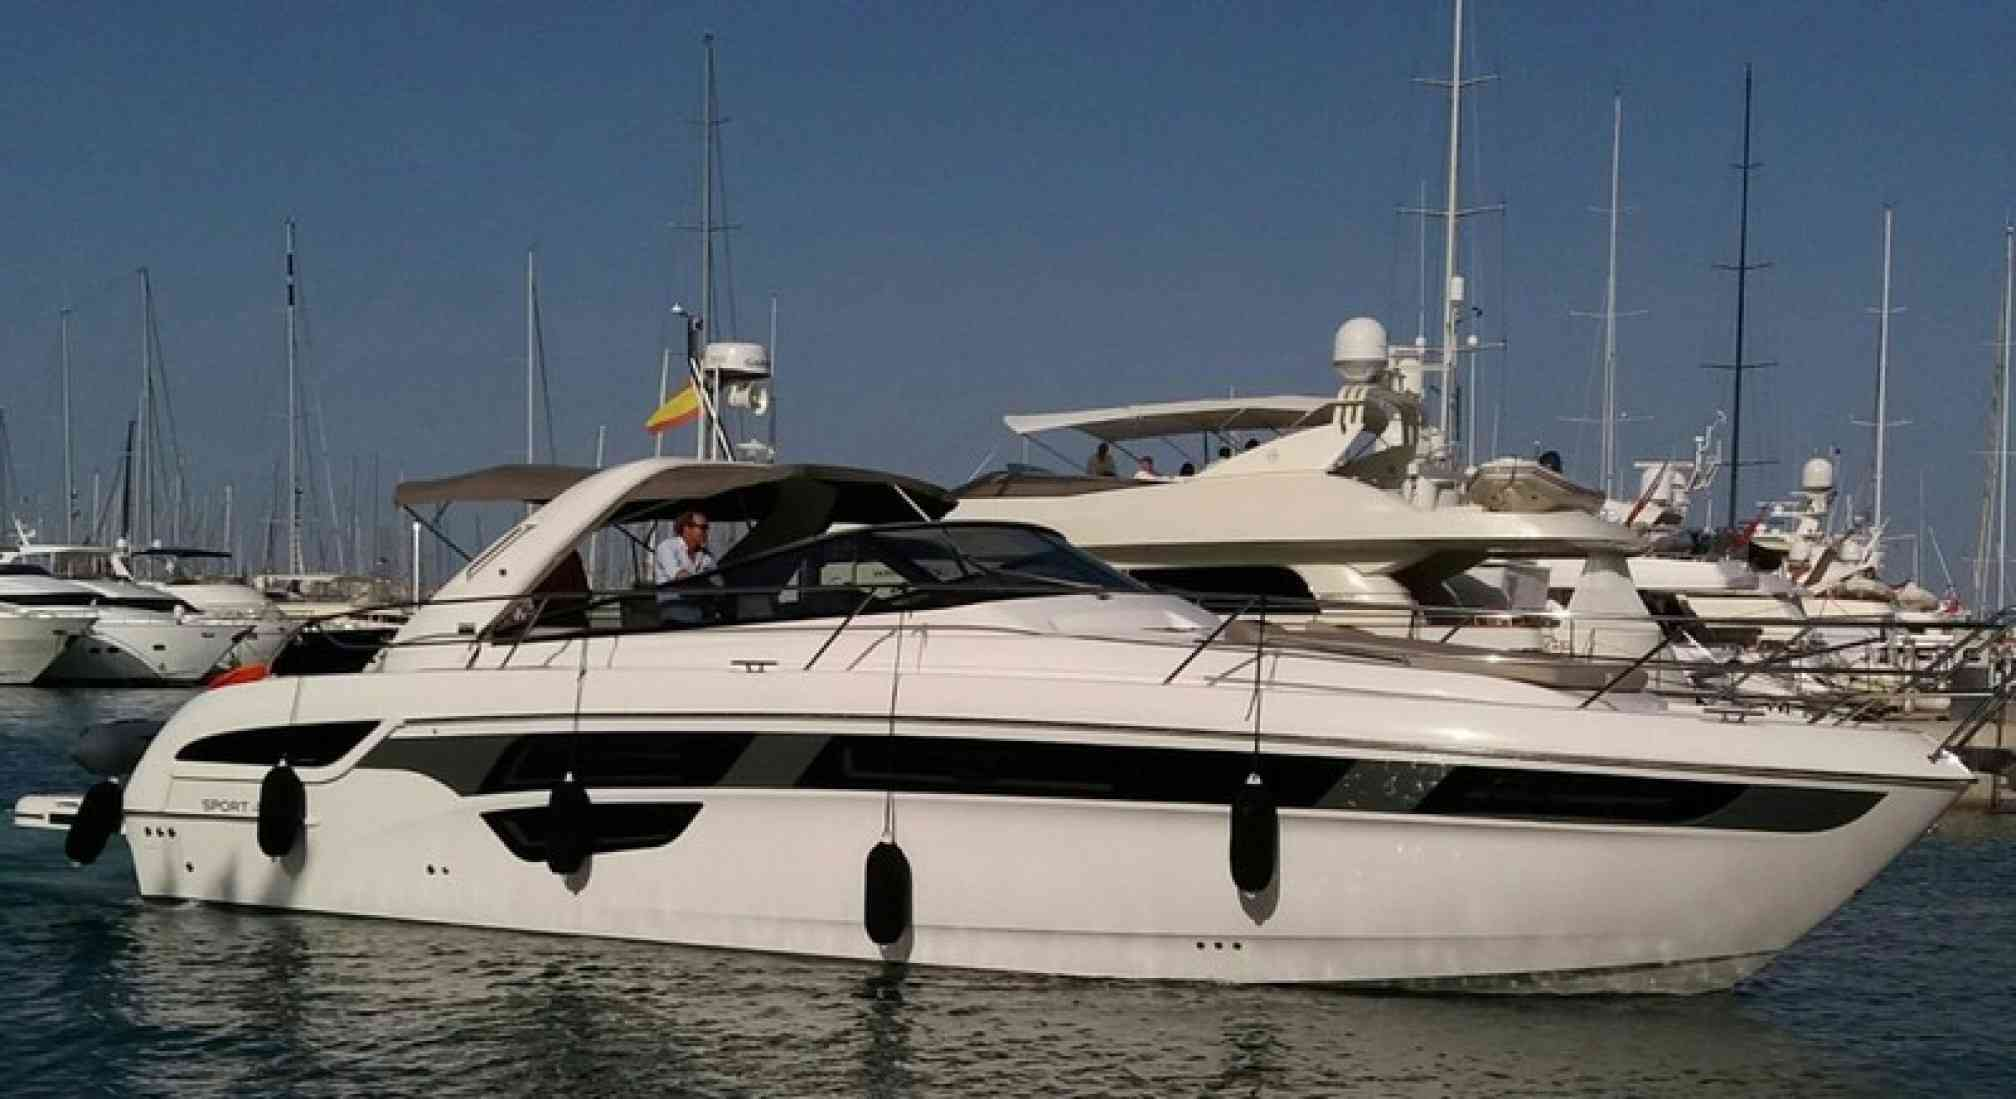 Bavaria 450 yacht charter anchored